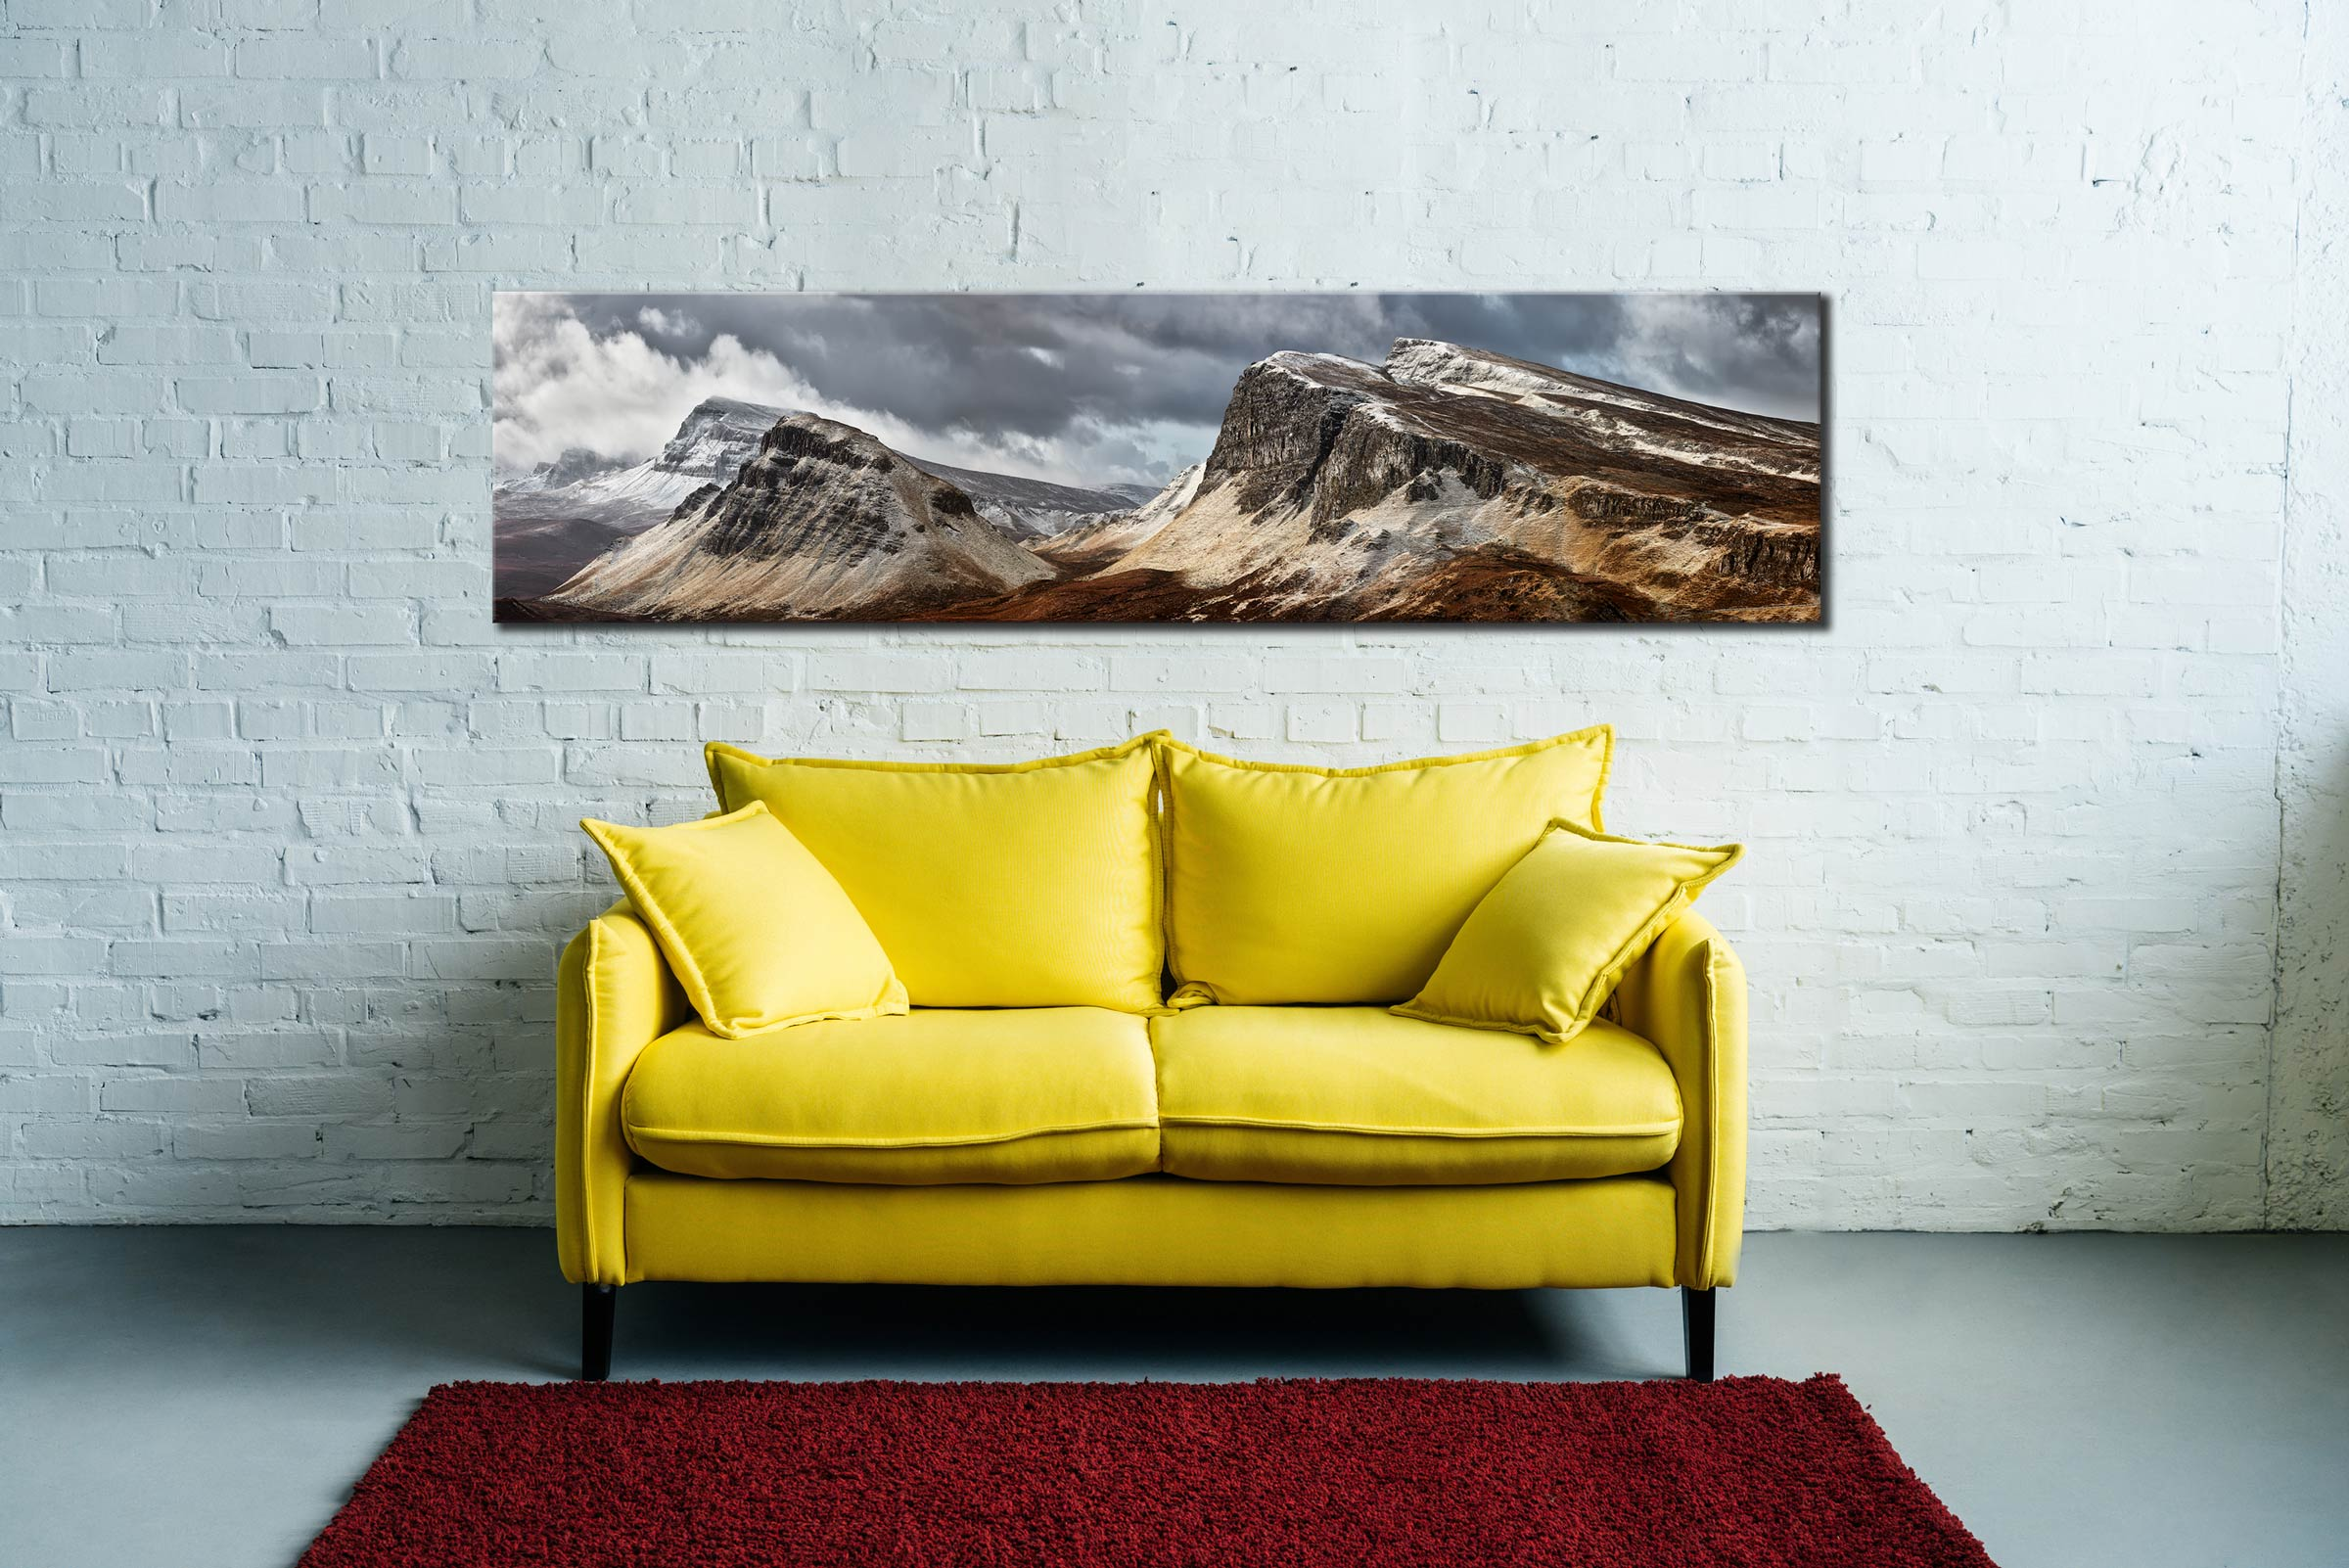 Snow on the Cleat and Dun Dubh - Scotland Canvas on Wall